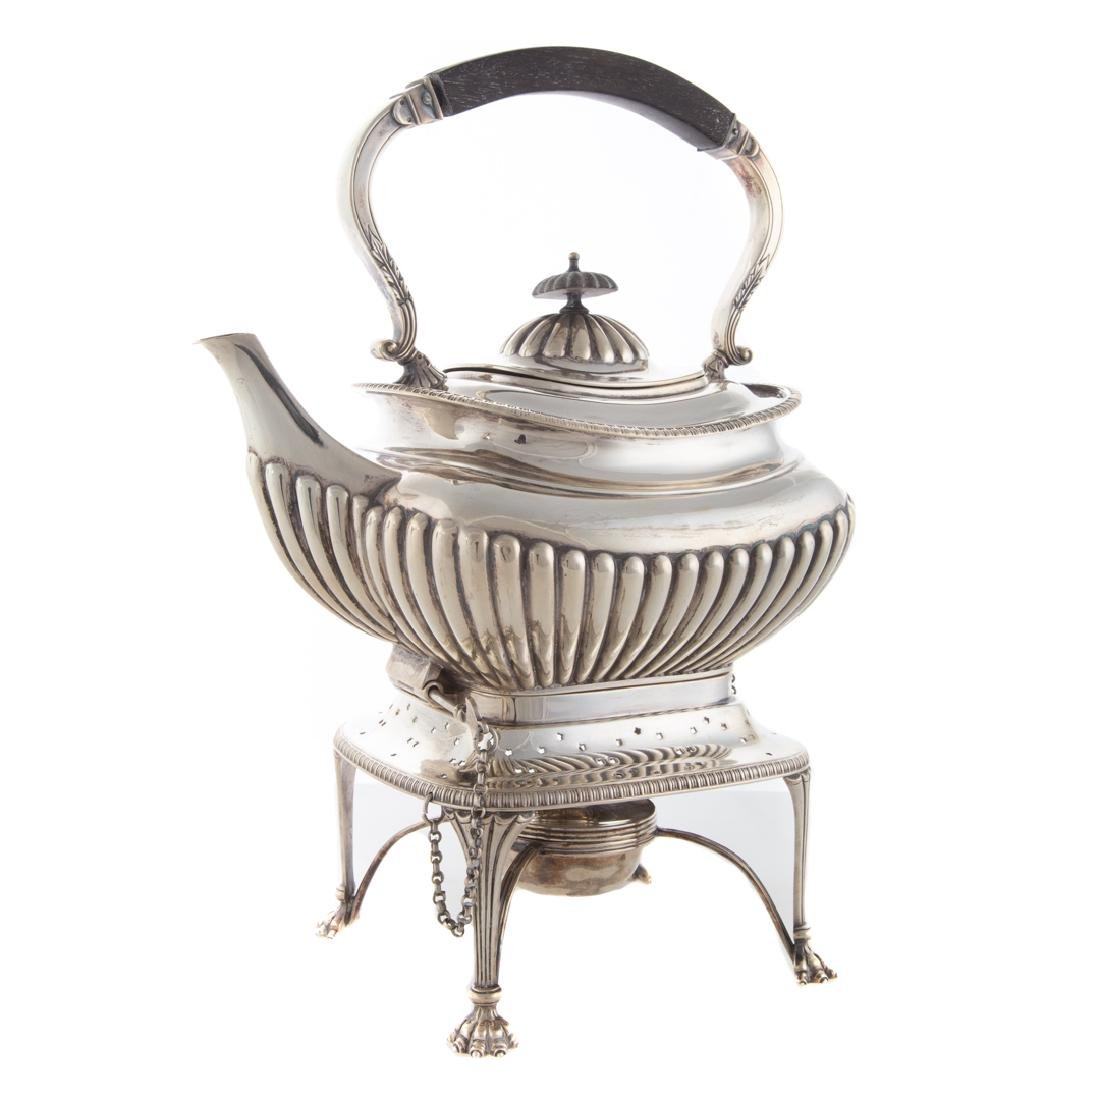 Edward VII silver hot water kettle on stand